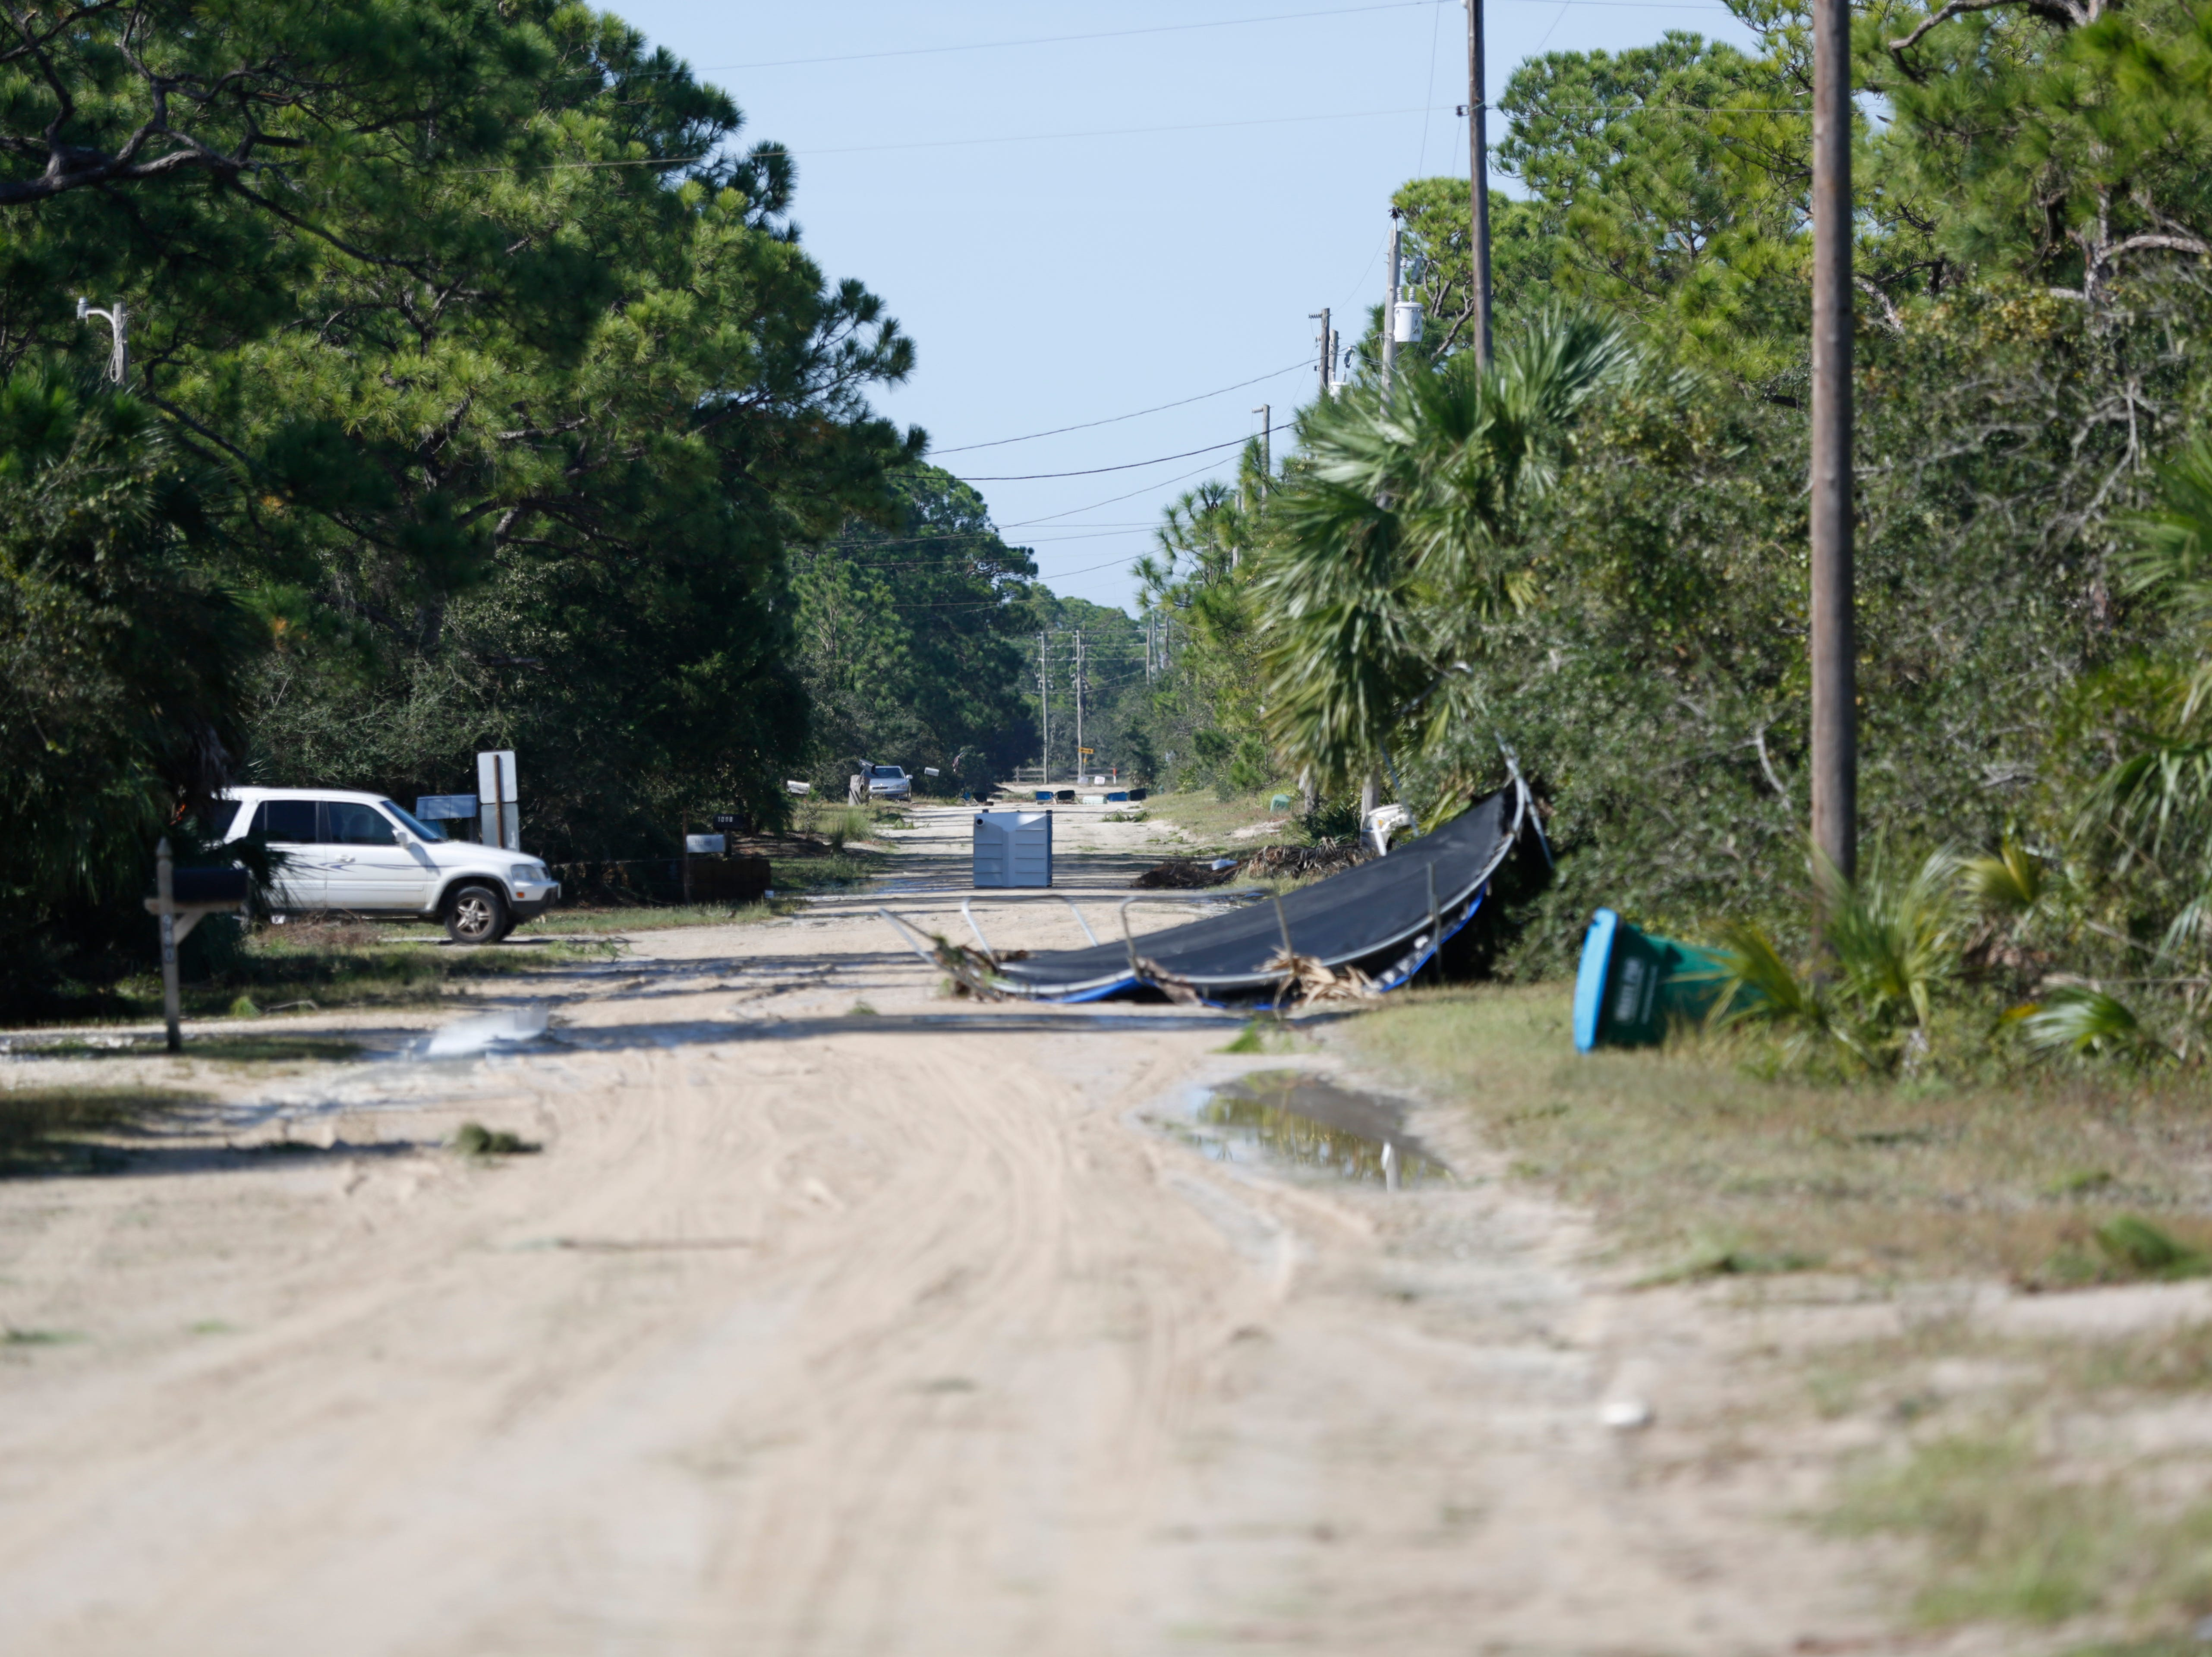 Destruction from Hurricane Michael is seen in St. George Island, Fla. Thursday, Oct. 11, 2018.